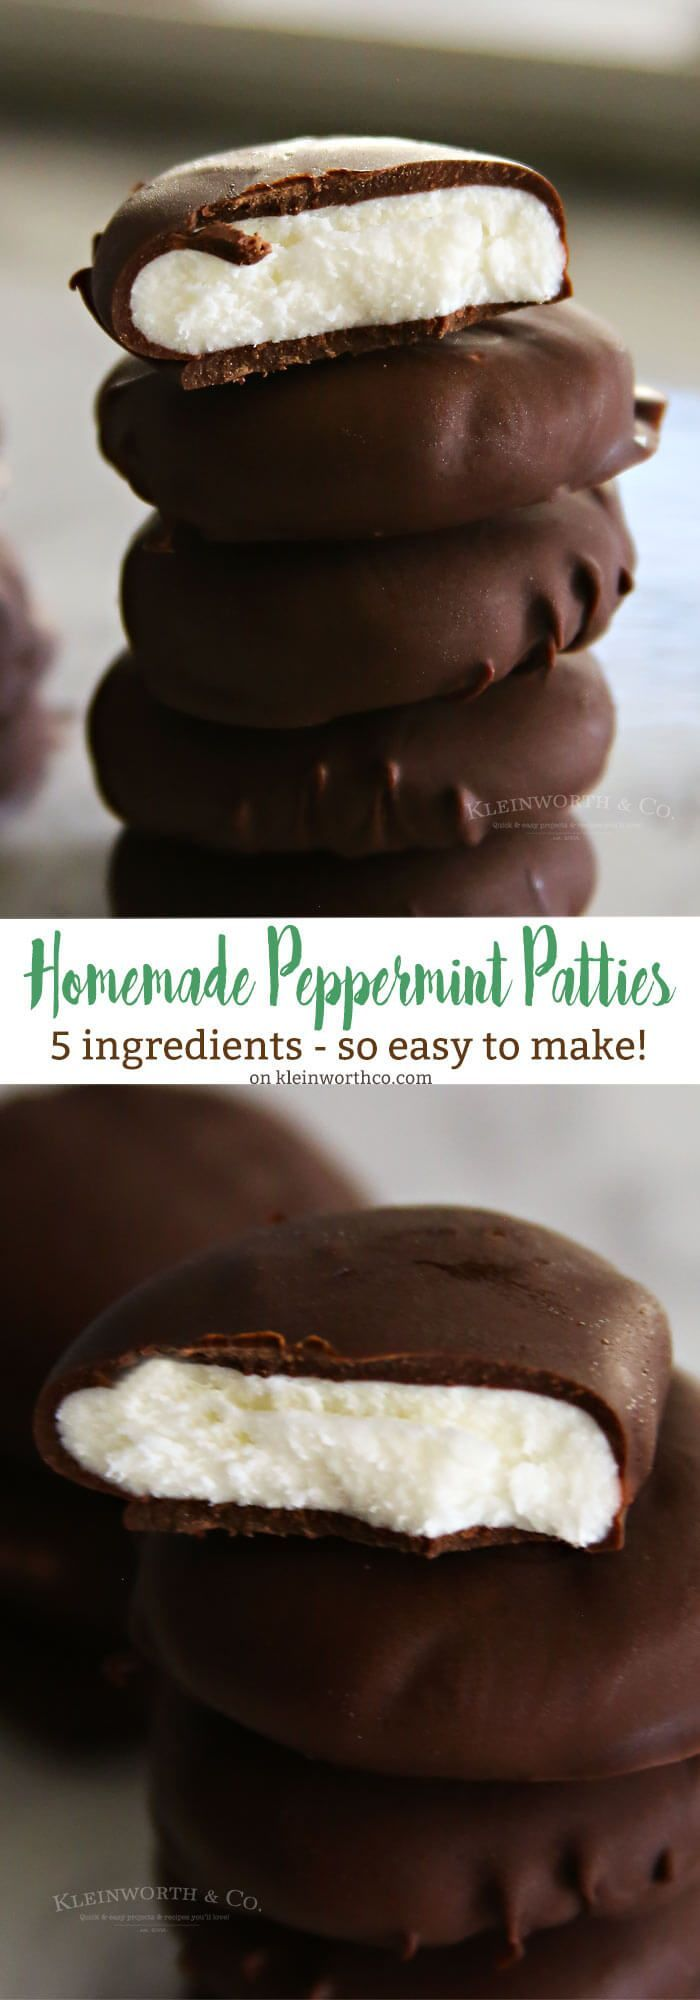 Homemade Peppermint Patties are one of the easiest minty desserts to make for St. Patrick's Day or any other holiday. Dark chocolate & mint! via @KleinworthCo